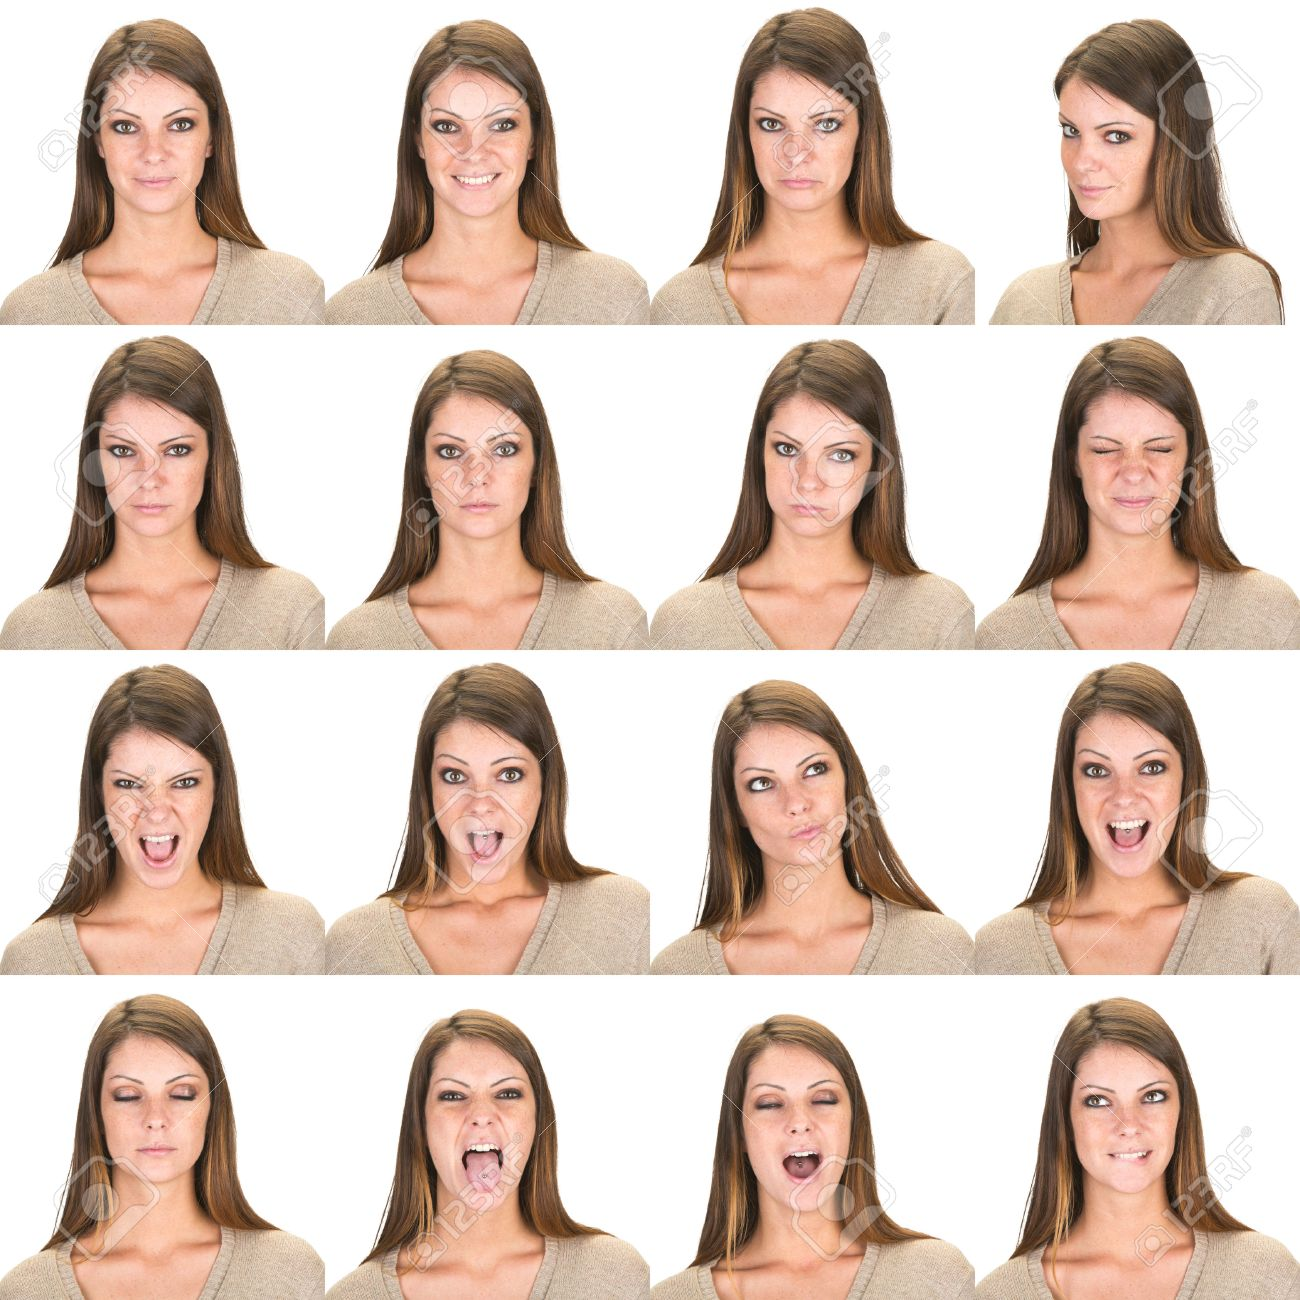 Grimace face clip art stock photo woman pulls a face in upset - Angry Suspicious Long And Straight Hair Brunette Young Caucasian Woman Collection Set Of Face Expression